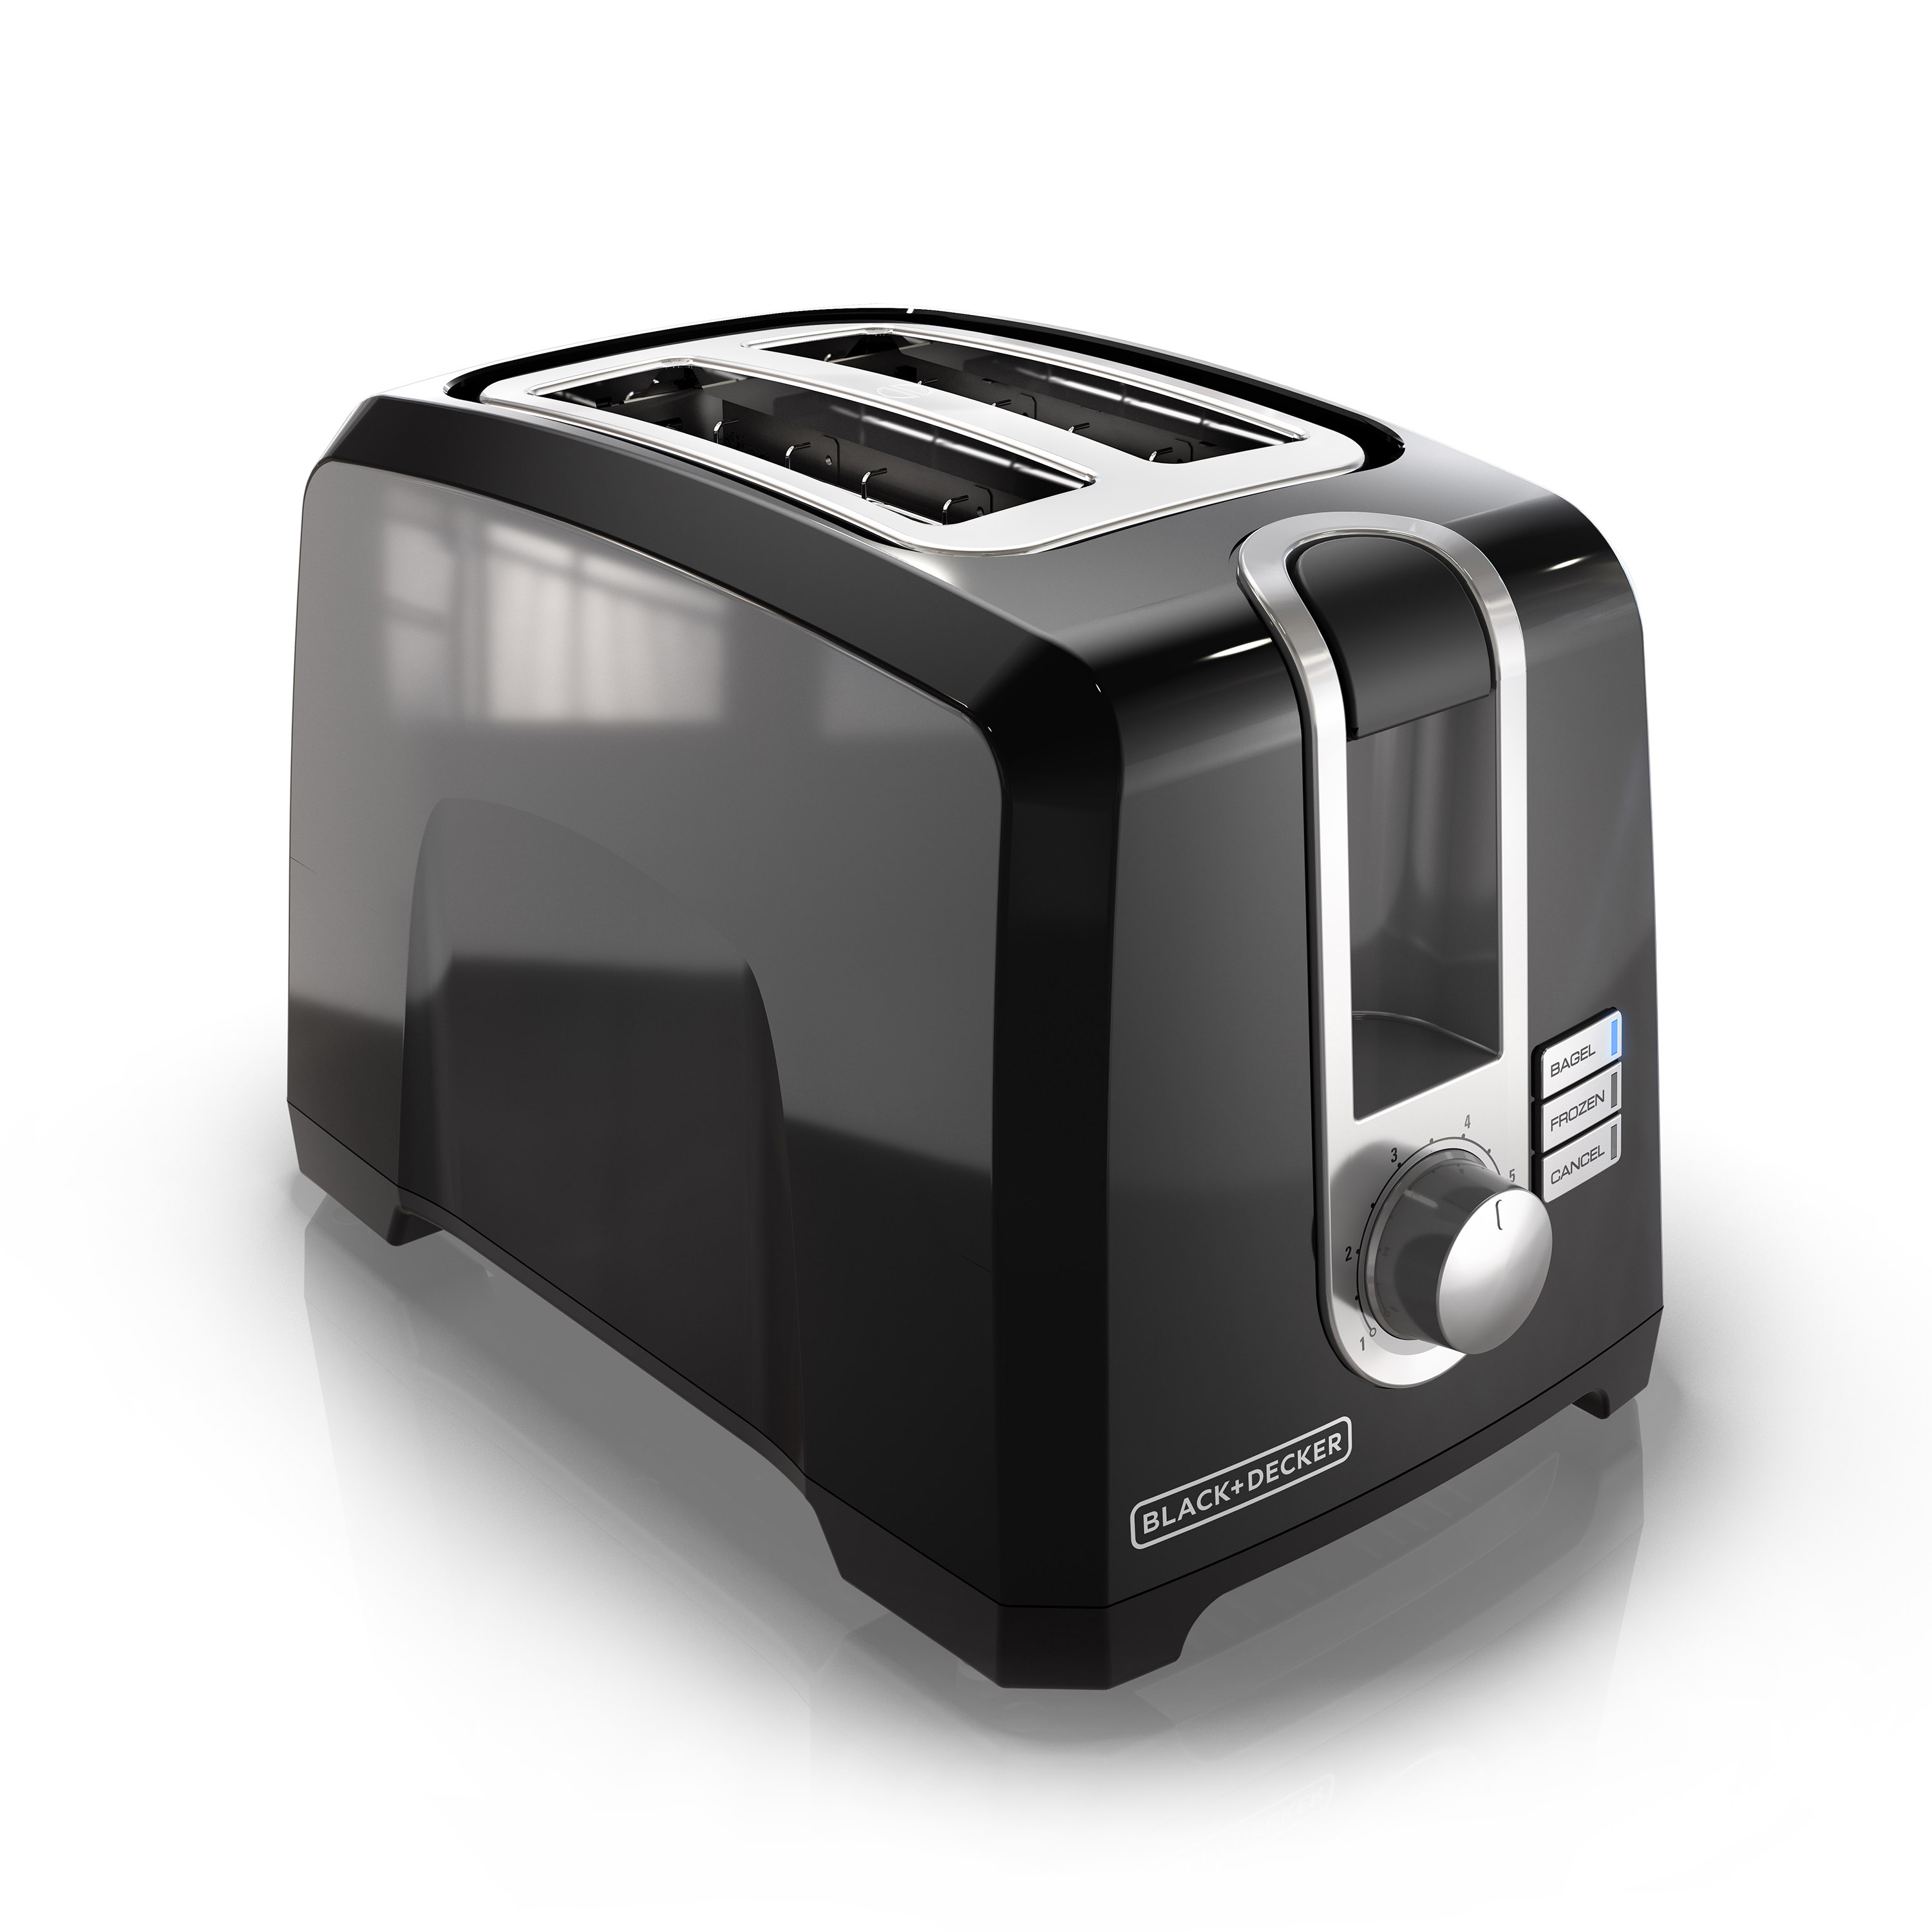 BLACK+DECKER 2-Slice Extra Wide Slot Toaster, Black, T2569B